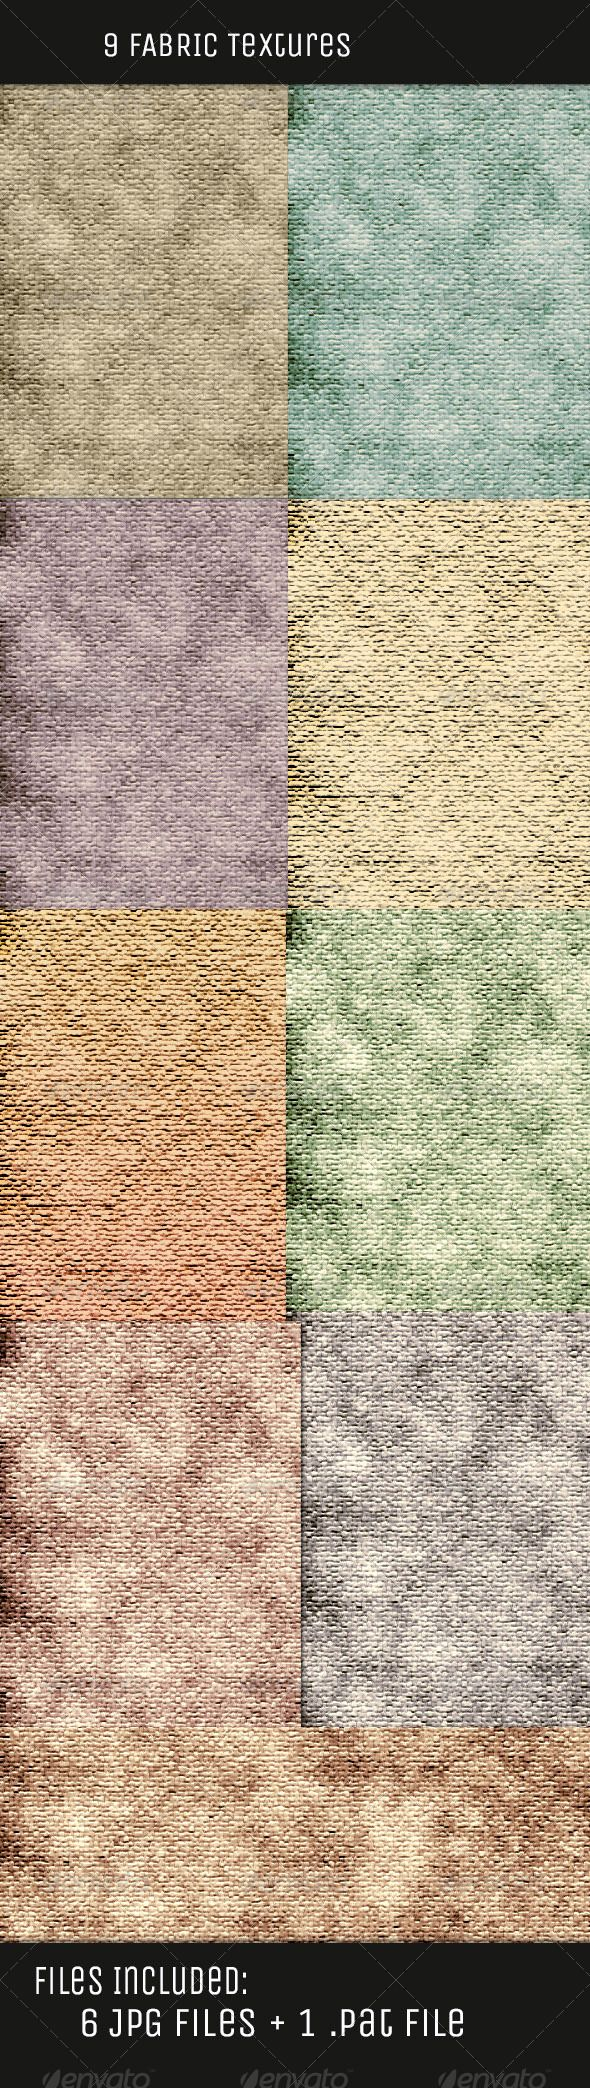 Fabric+Color+Textures+V1